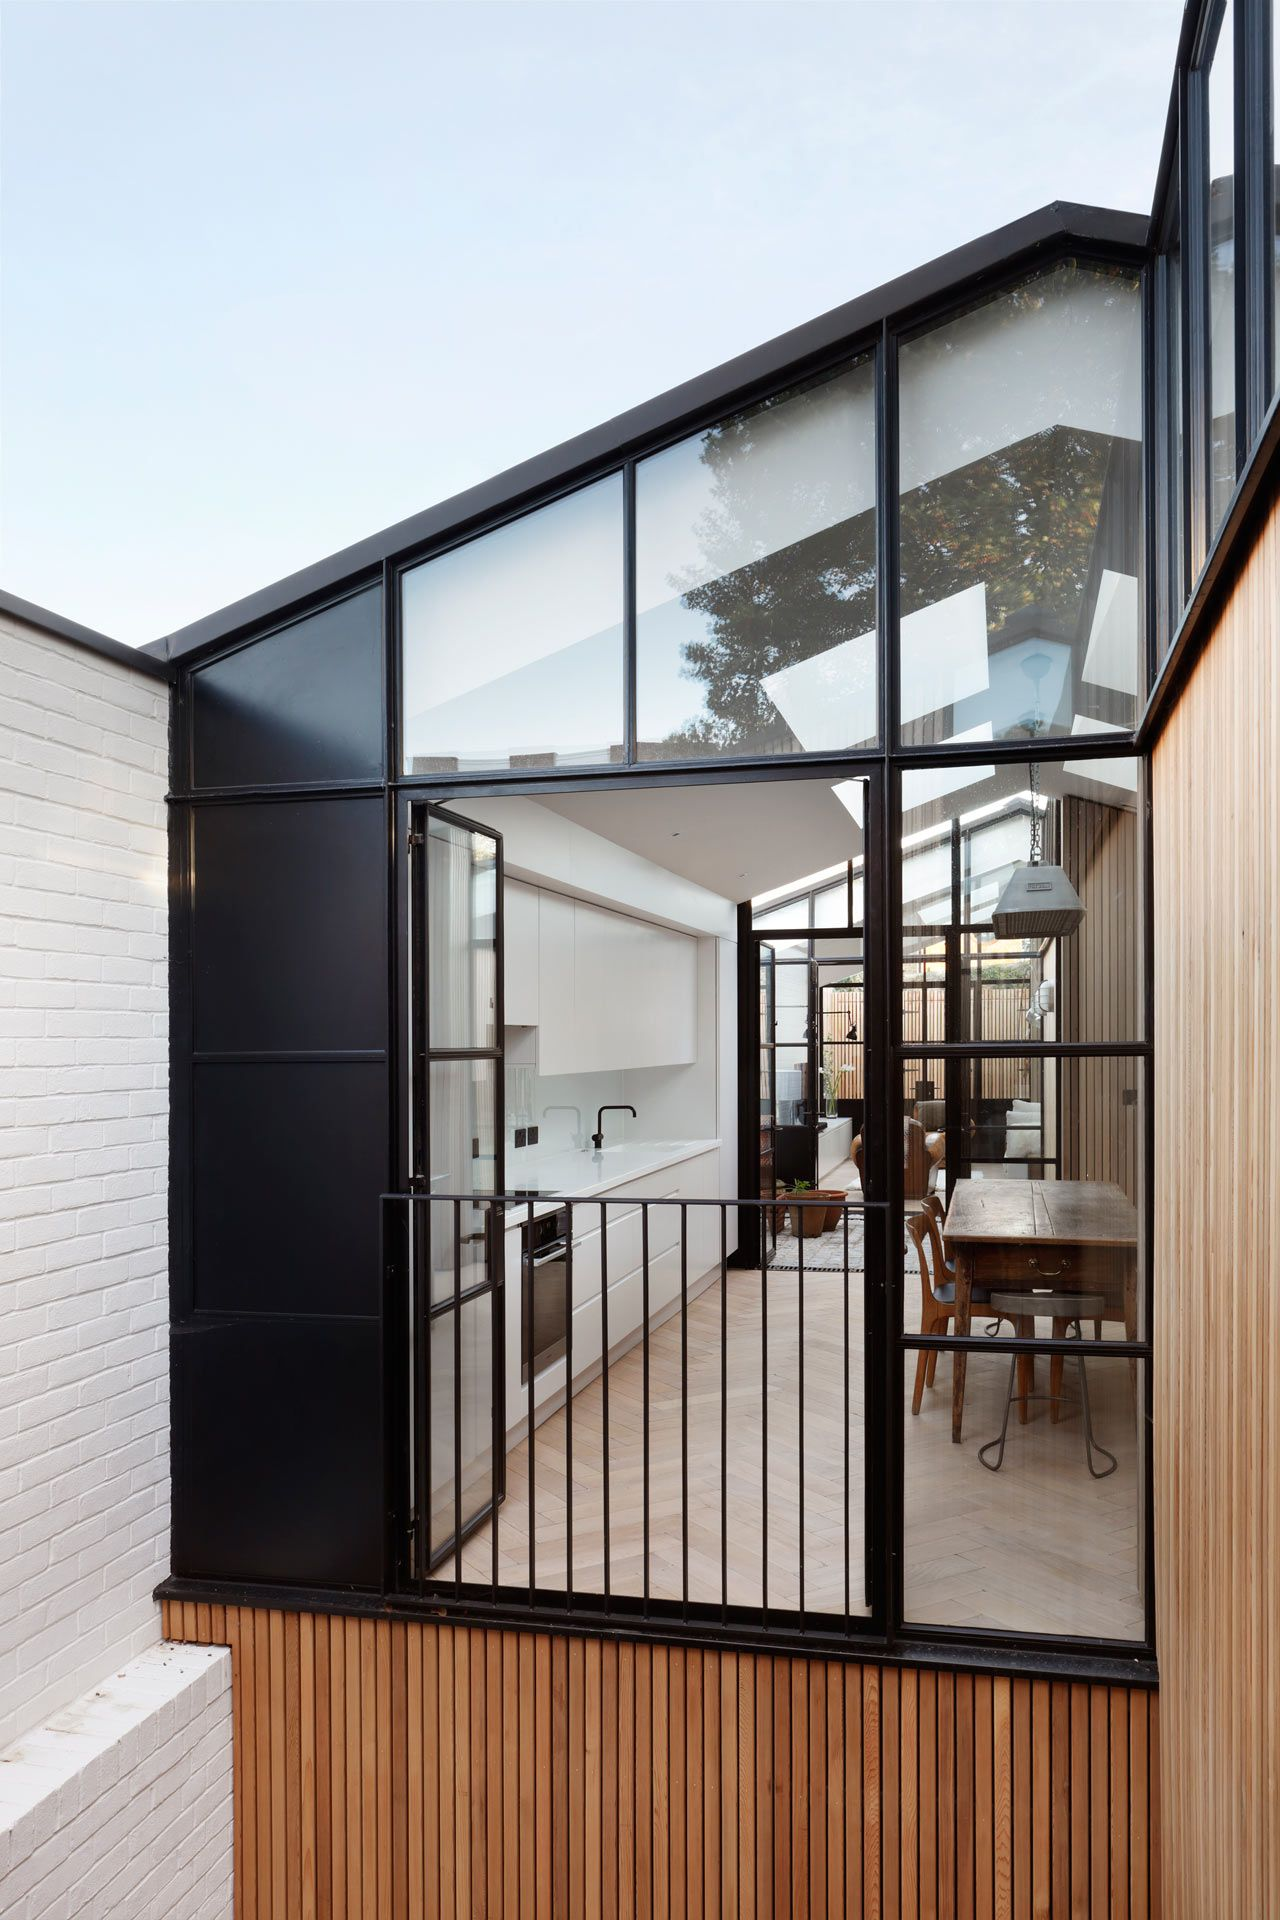 Courtyard house deroseesaarchitects 7a design milk